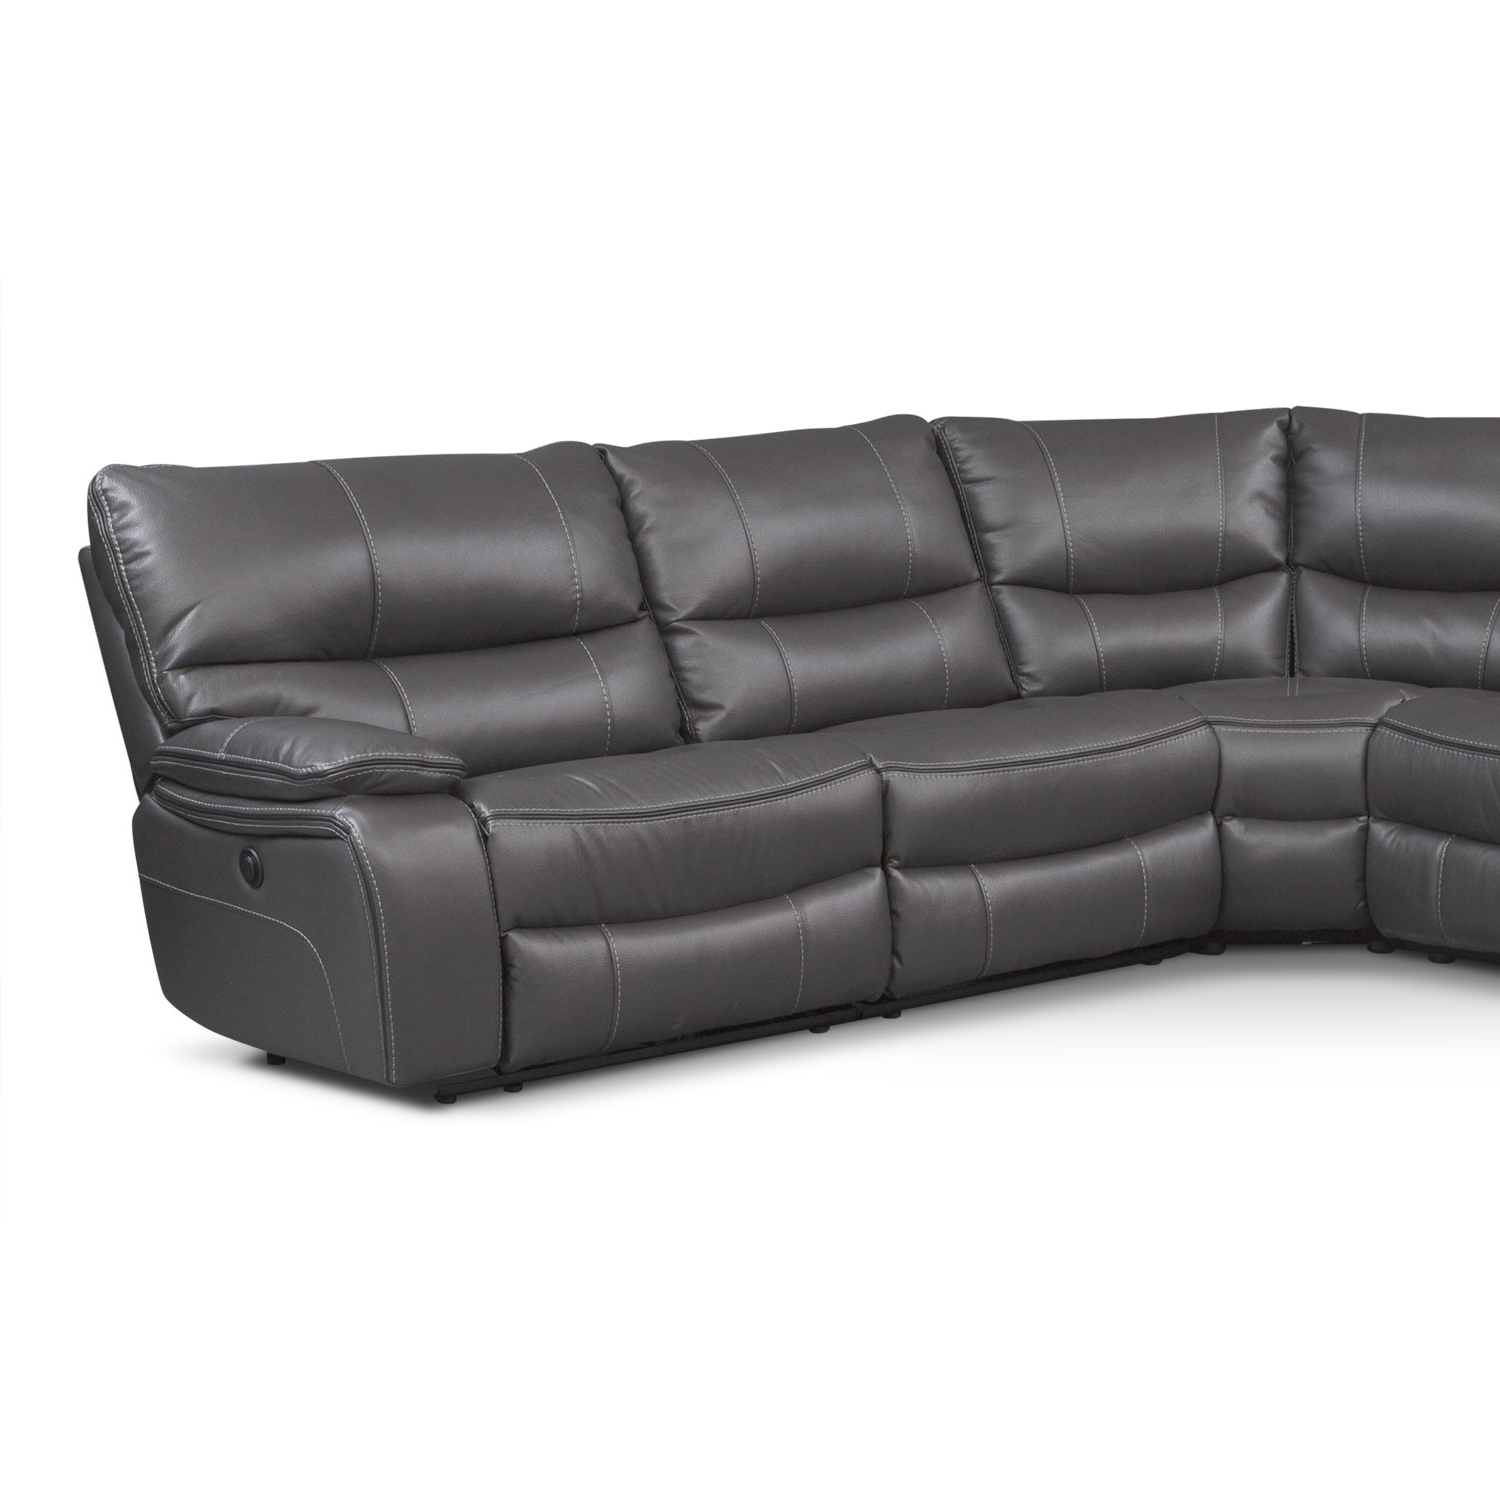 Orlando 6 Piece Power Reclining Sectional With 1 Stationary Chair For Best And Newest Kristen Silver Grey 6 Piece Power Reclining Sectionals (View 11 of 20)